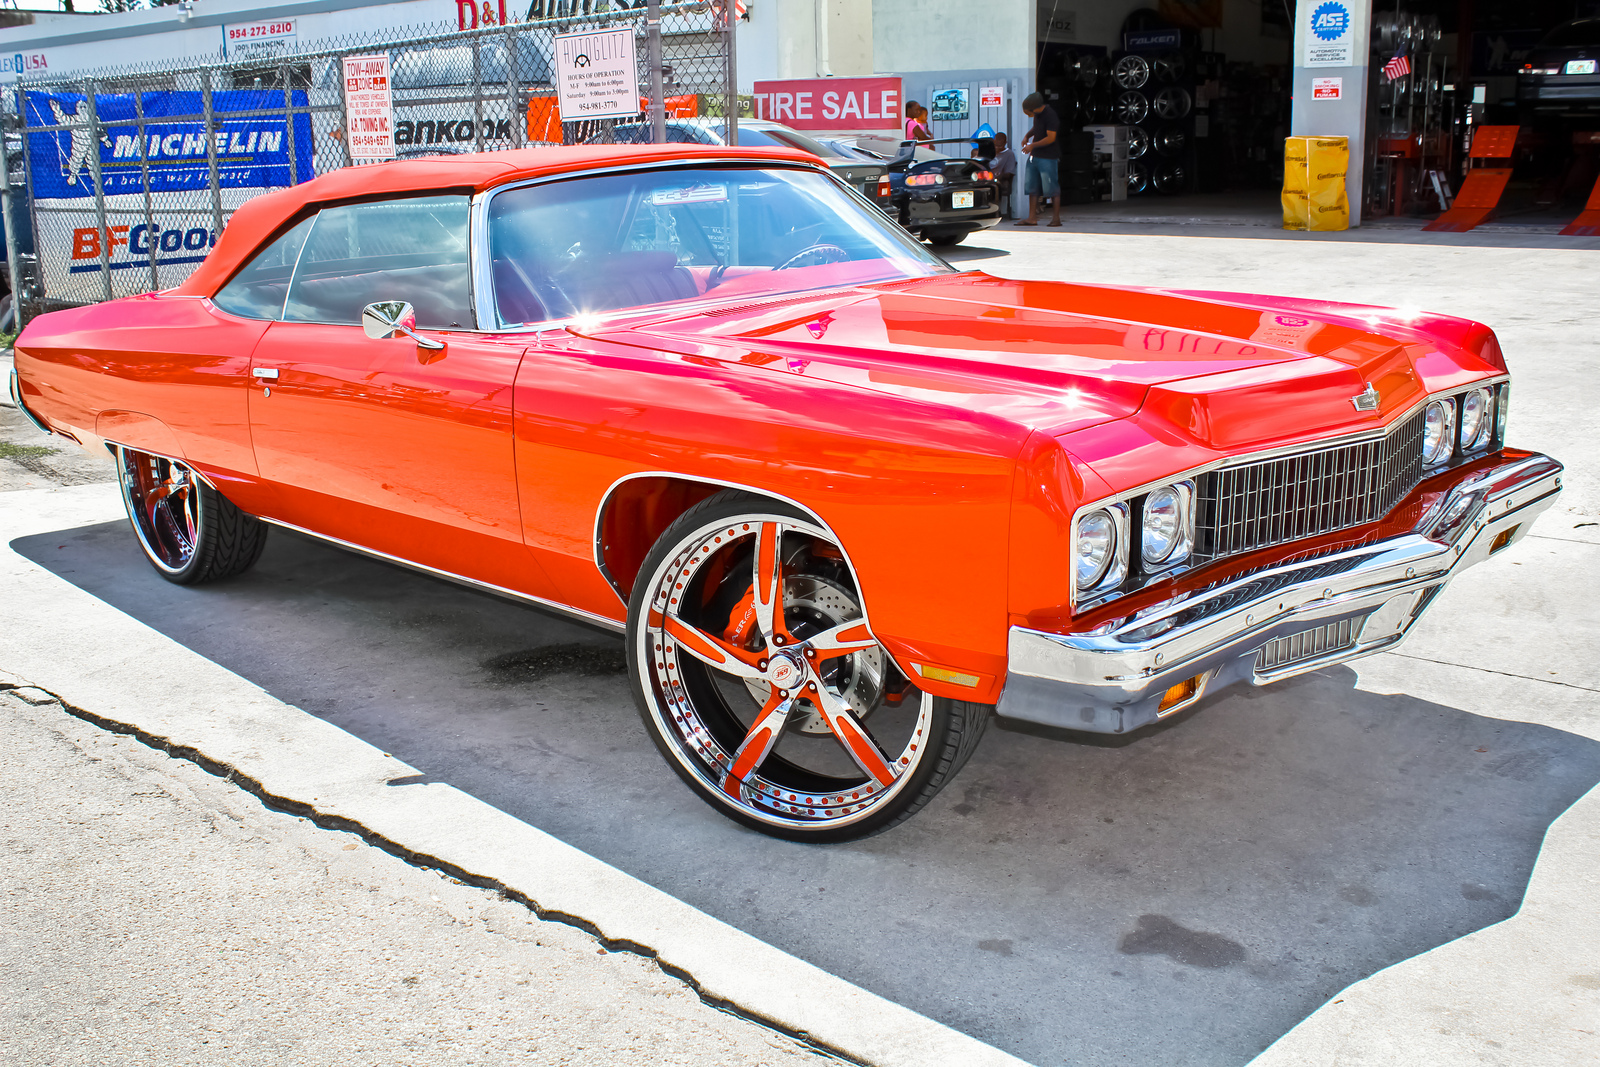 2014 Chevy Impala Ltz For Sale The Donk Putting Huge Wheels on a Car autoevolution